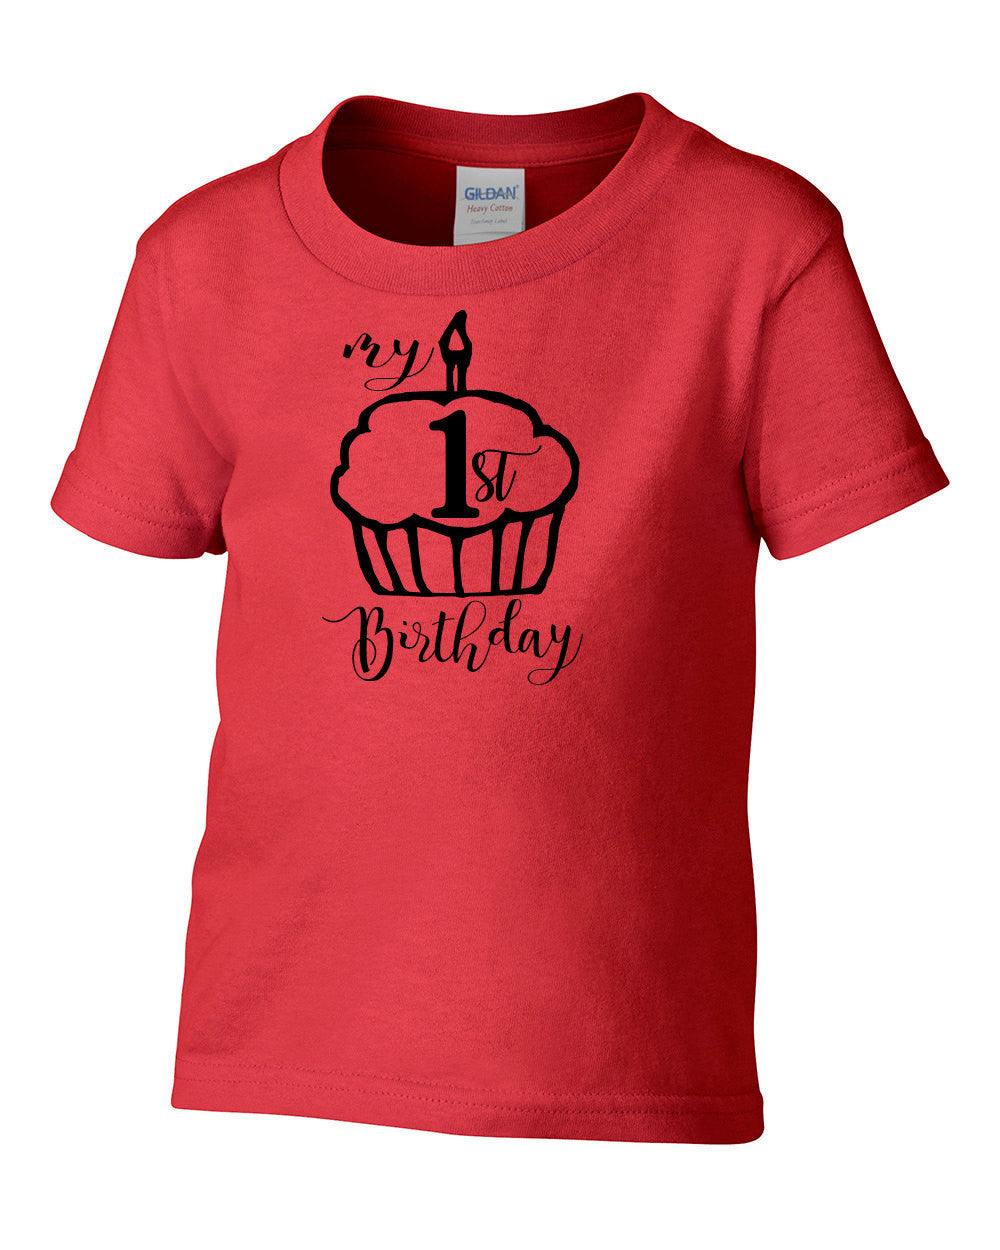 My 1st Birthday Shirt Take Home OutfitsChristmas Newborn Baby Boy Outfit